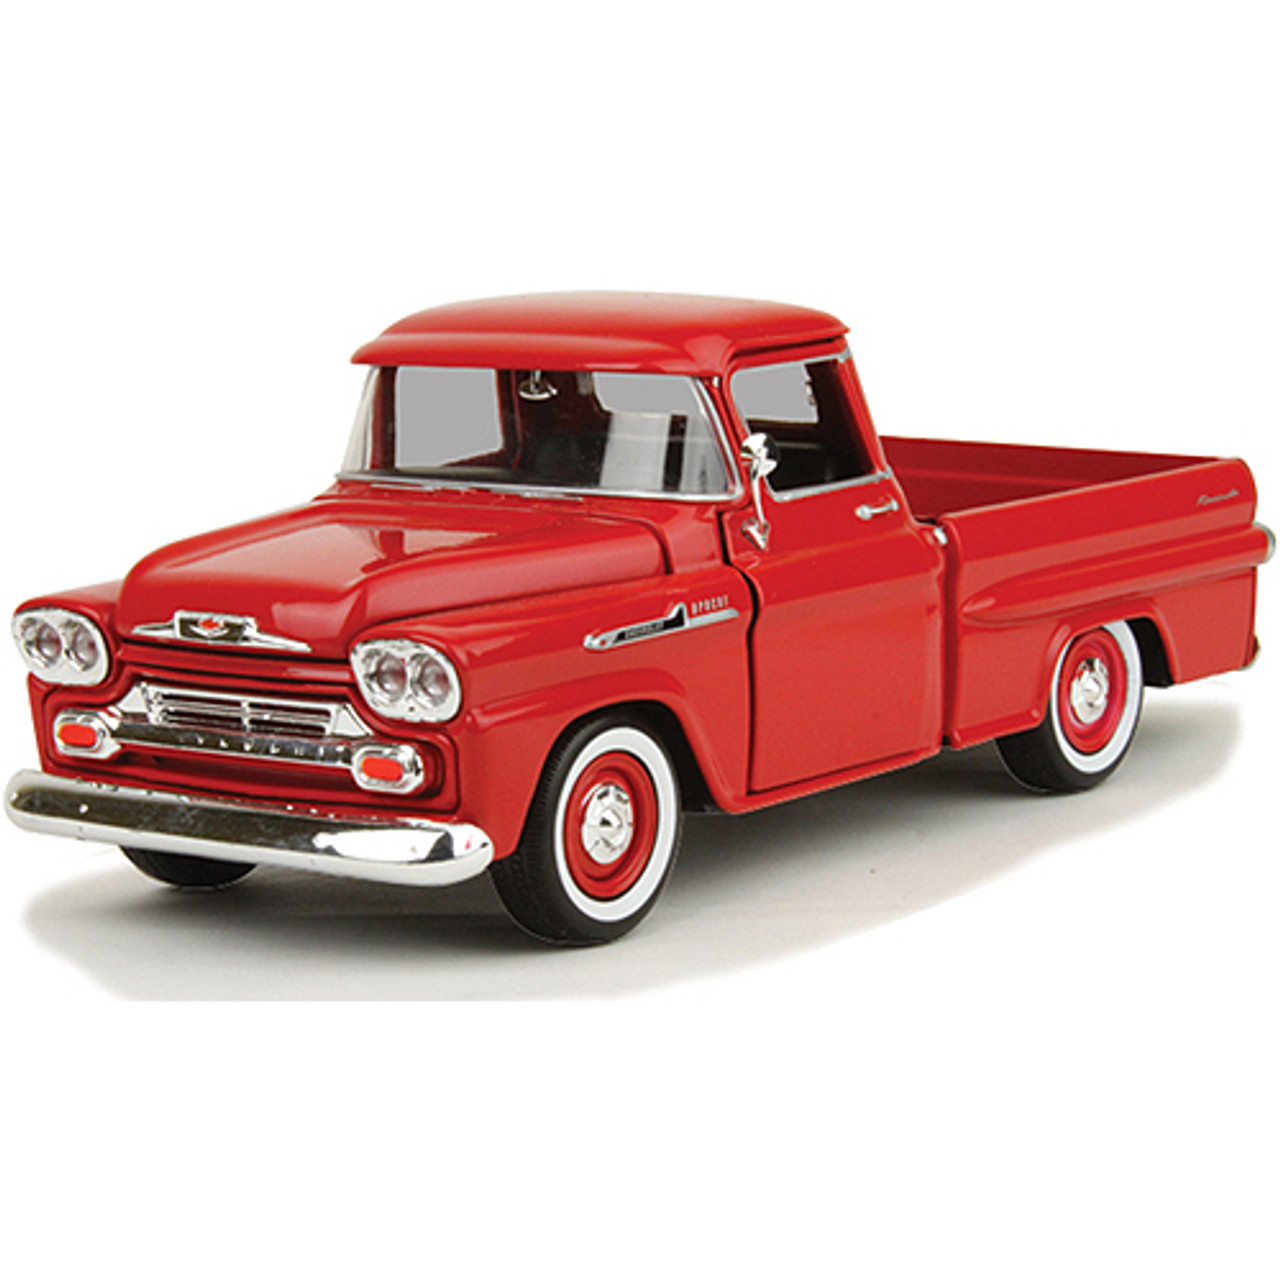 1958 Chevy Apache Fleetside Pickup Red 1 24 Scale Diecast Model By Motormax Fairfield Collectibles The 1 Source For High Quality Diecast Scale Model Cars